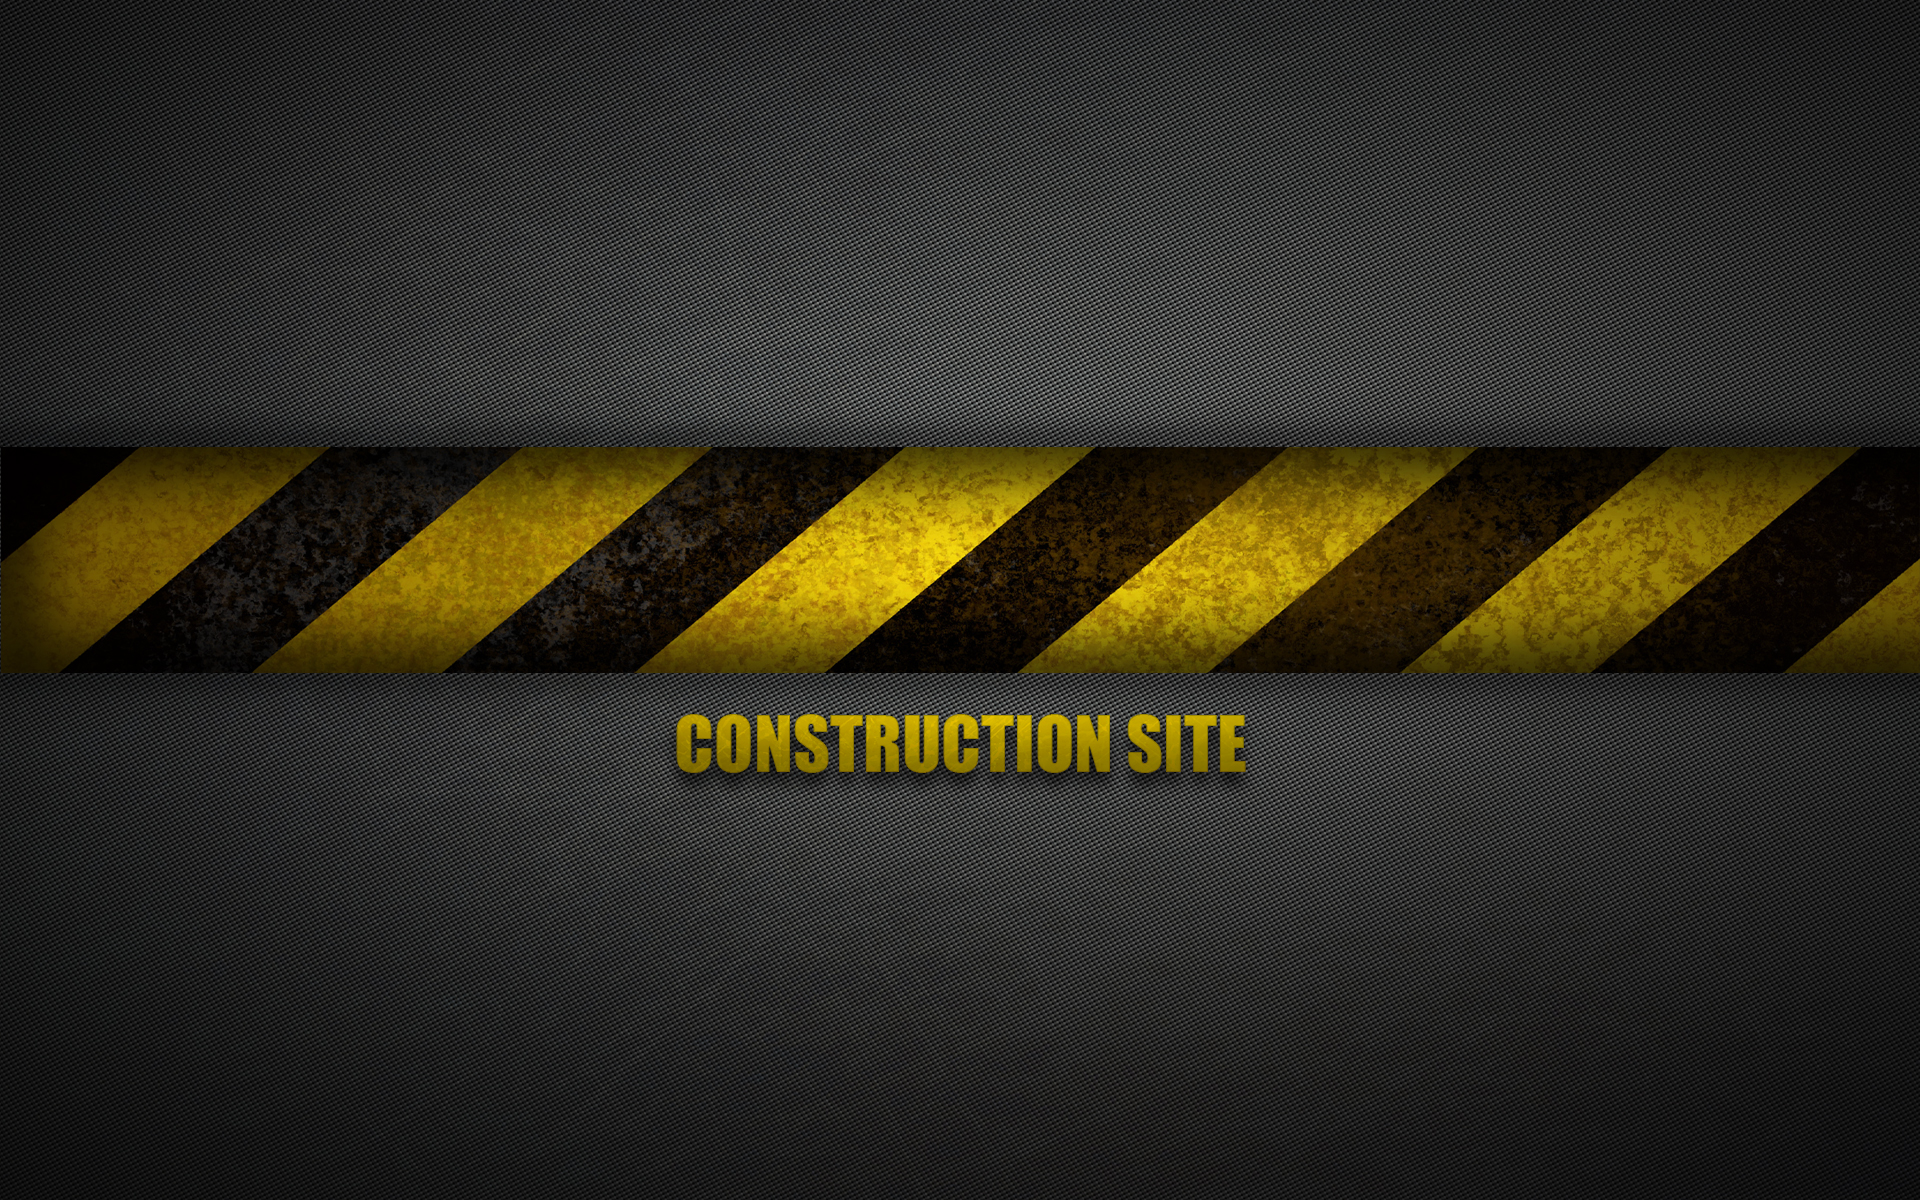 50 Free Construction Wallpapers For Download In High Definition